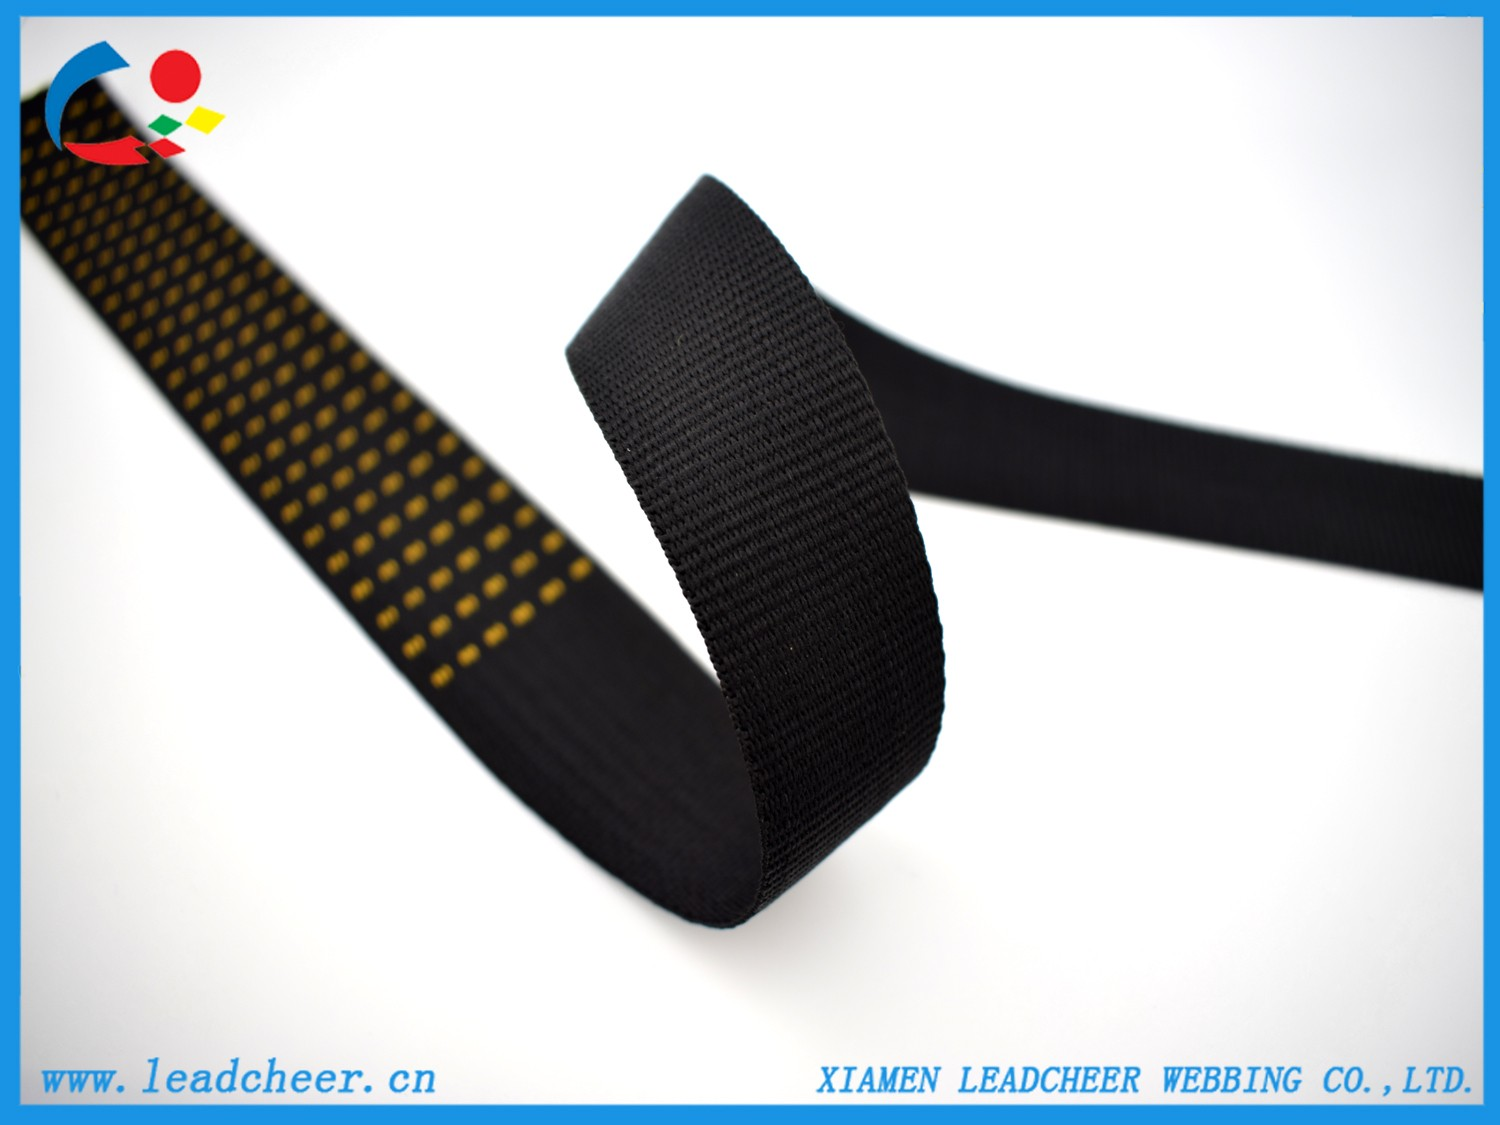 High quality Narrow and Wide Webbing for Decoration on Bags Quotes,China Narrow and Wide Webbing for Decoration on Bags Factory,Narrow and Wide Webbing for Decoration on Bags Purchasing